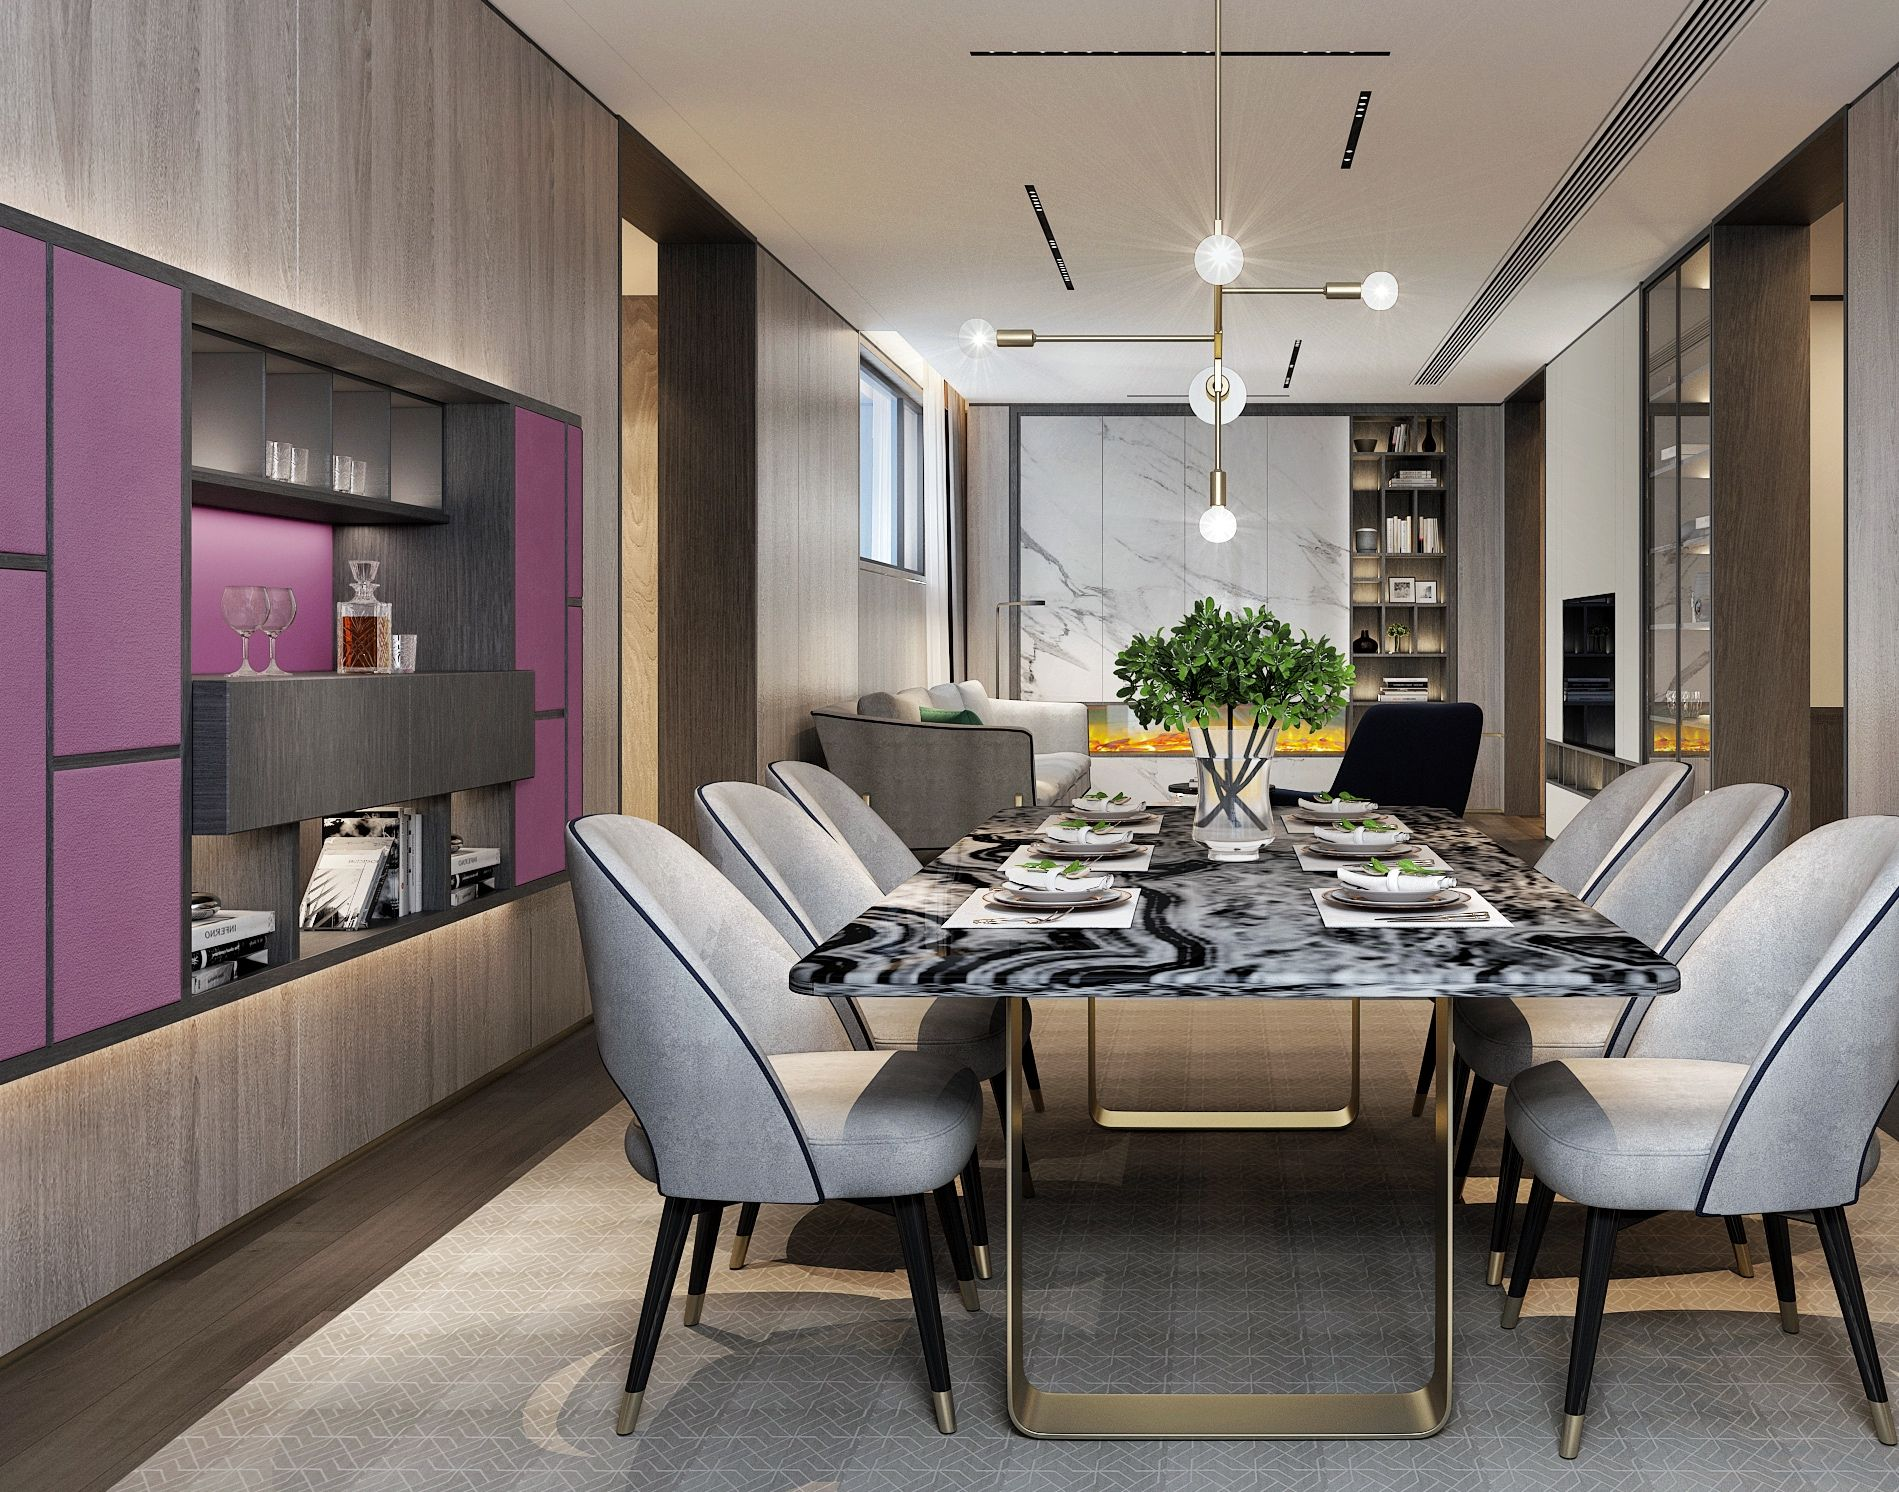 Pinsuyili On Diningroom  Pinterest  Dining Room And Dining Area Magnificent Contemporary Modern Living Room 2018